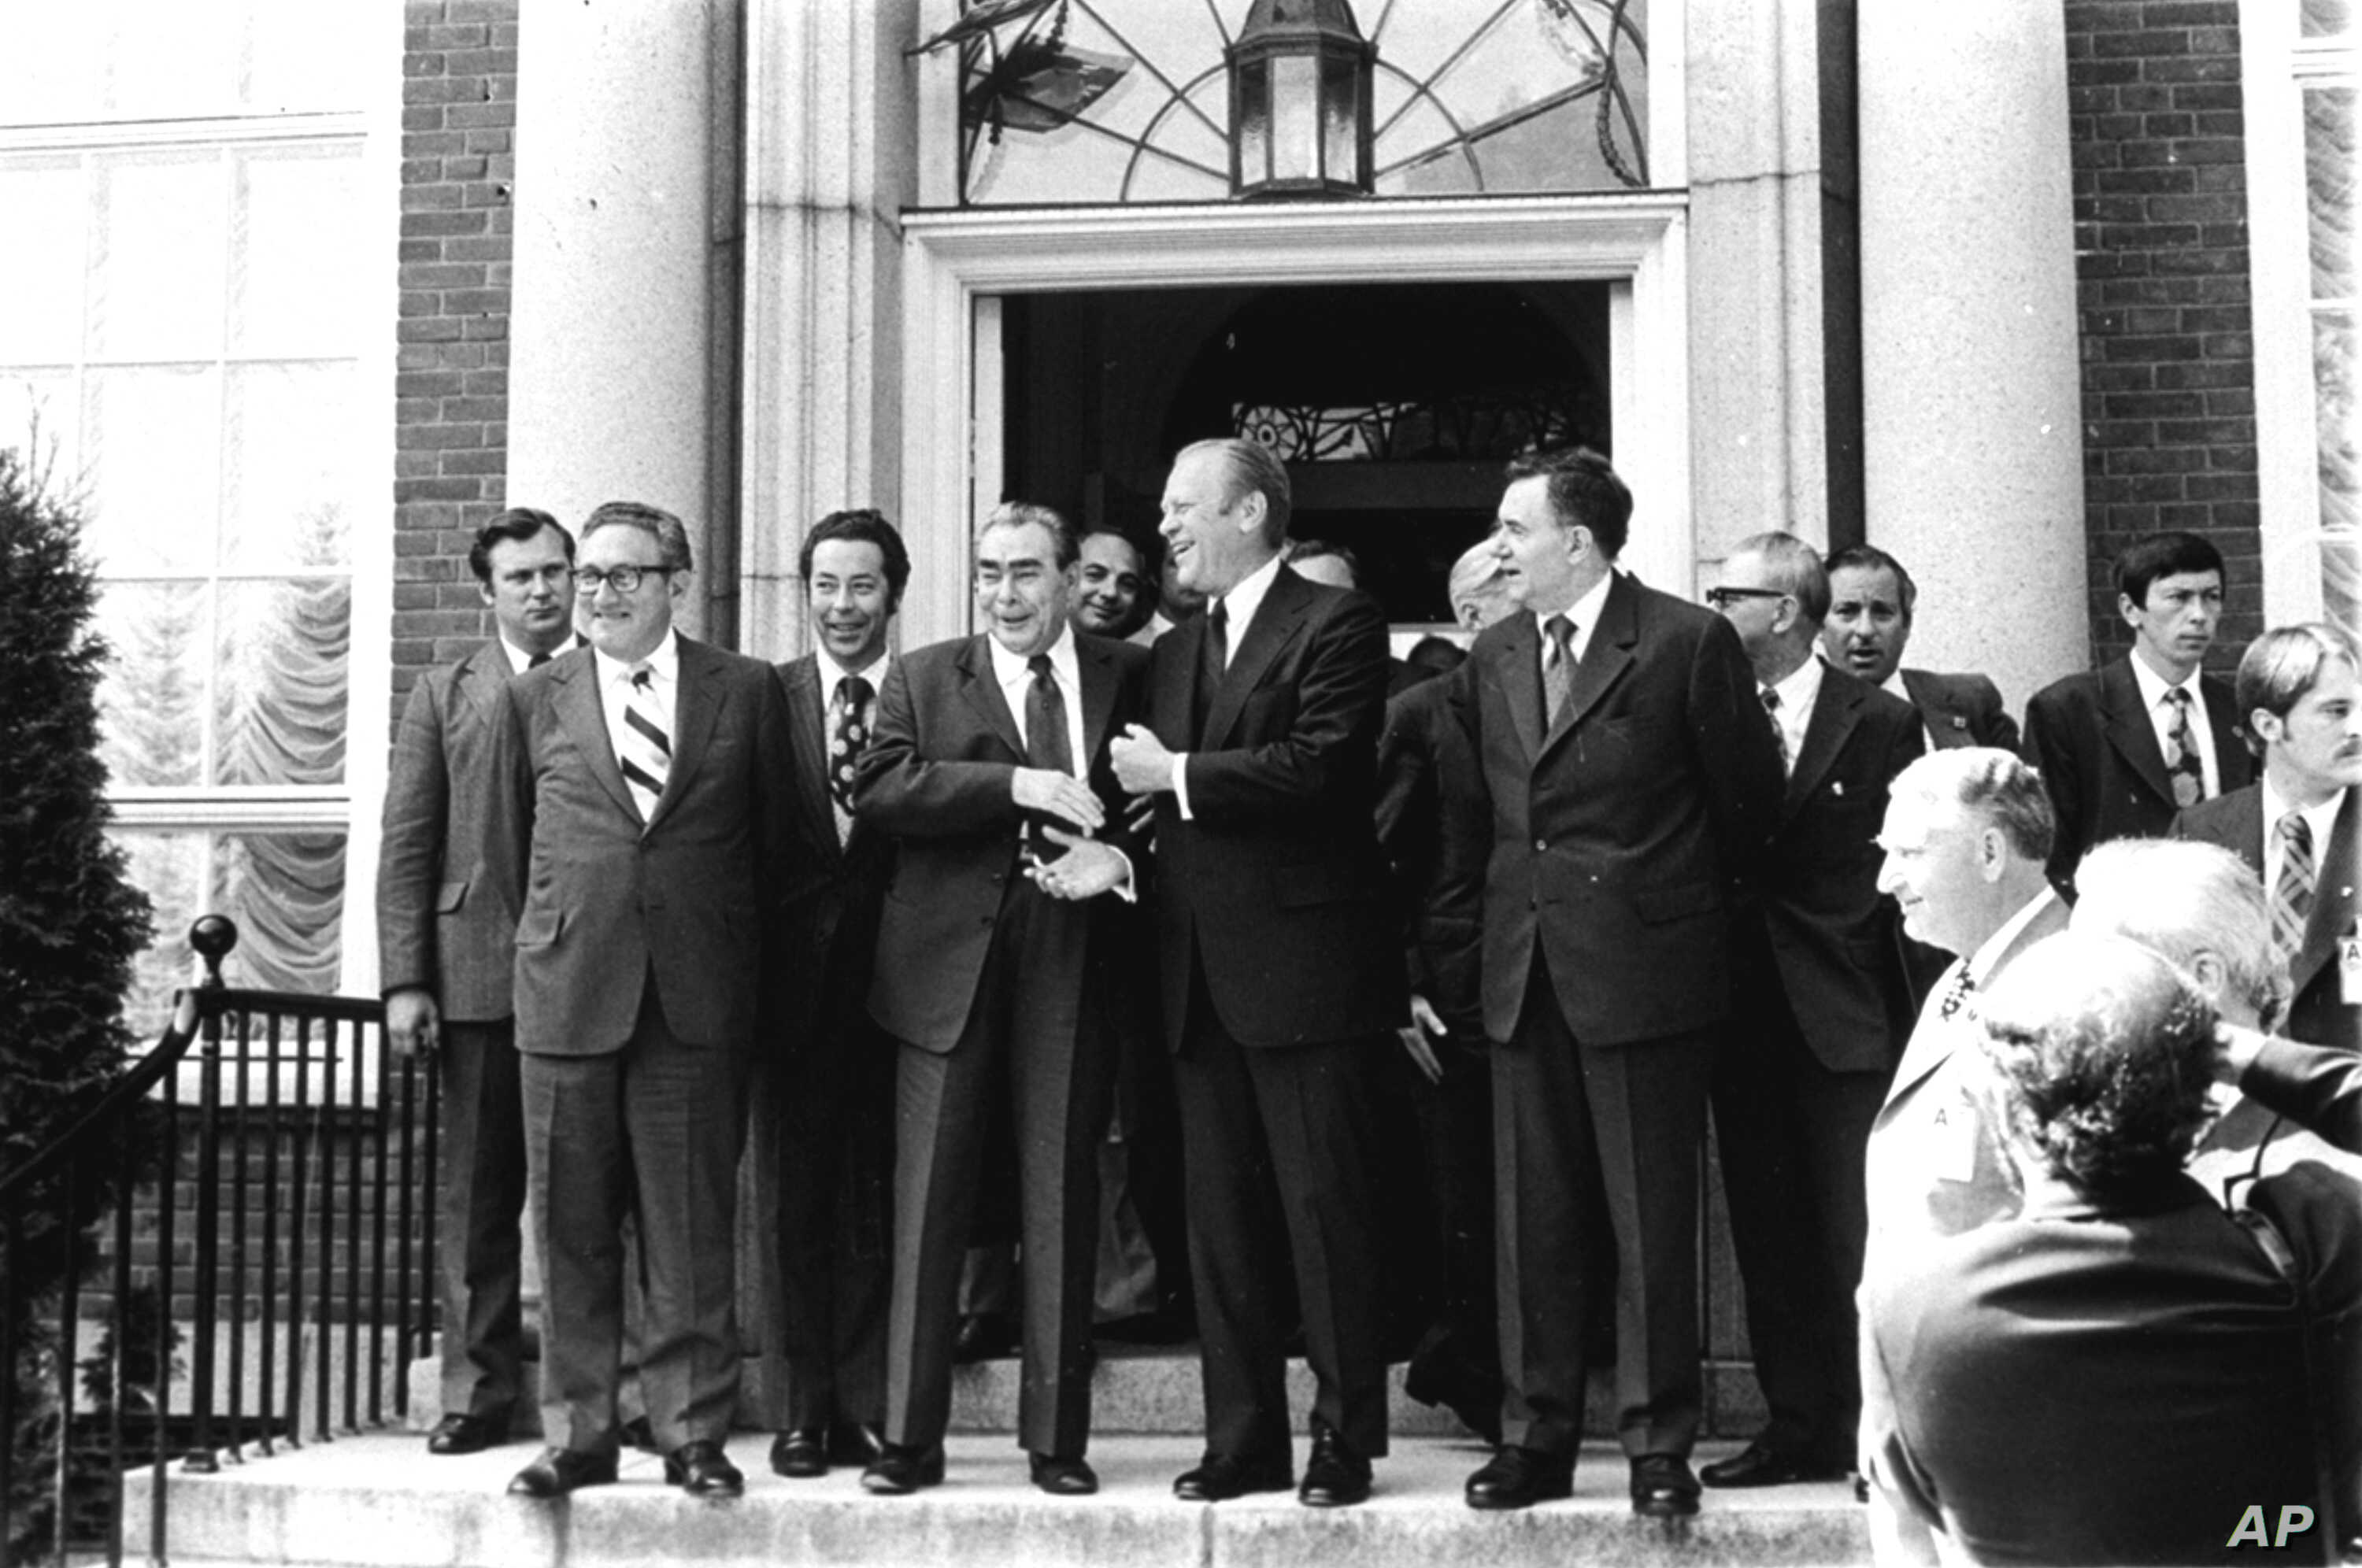 Soviet General Secretary Leonid Brezhnev shakes hands with President Ford after their first round of talks at the American Embassy in Helsinki, July 30, 1975.  (AP Photo)